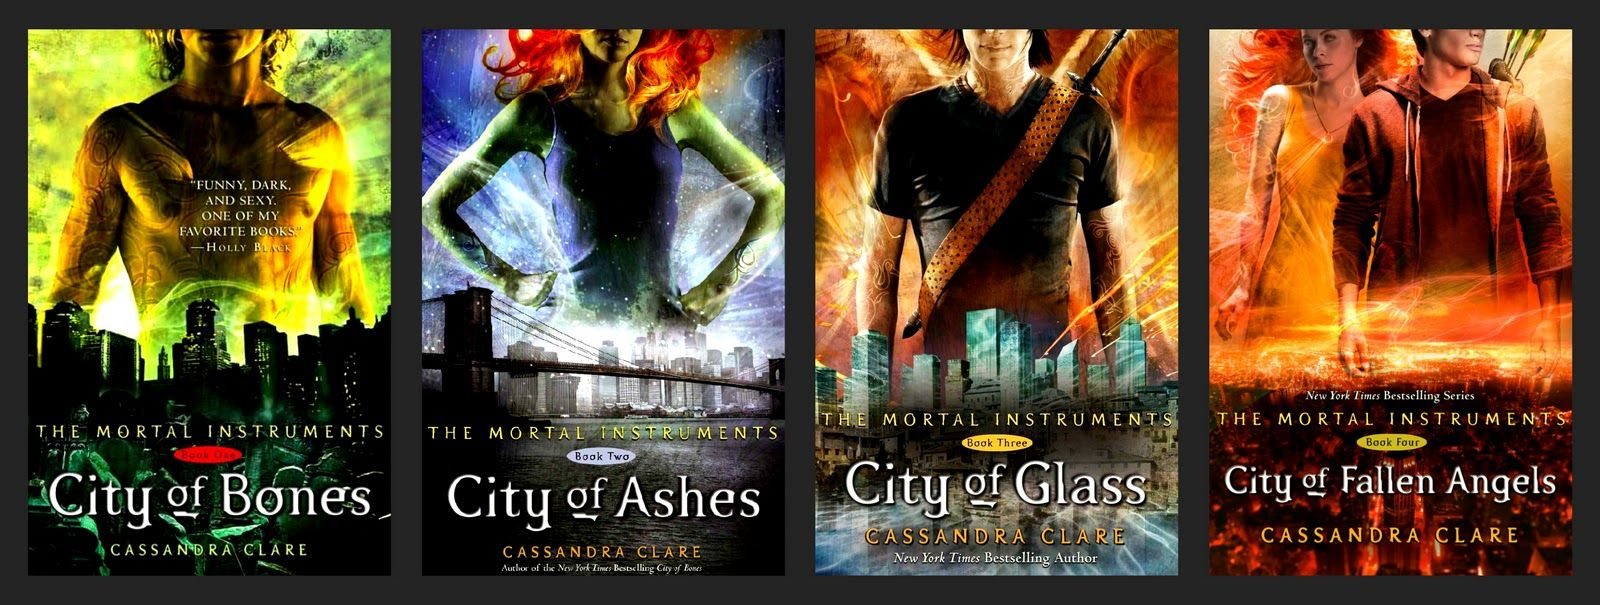 Cassandra Clare - The Mortal Instruments